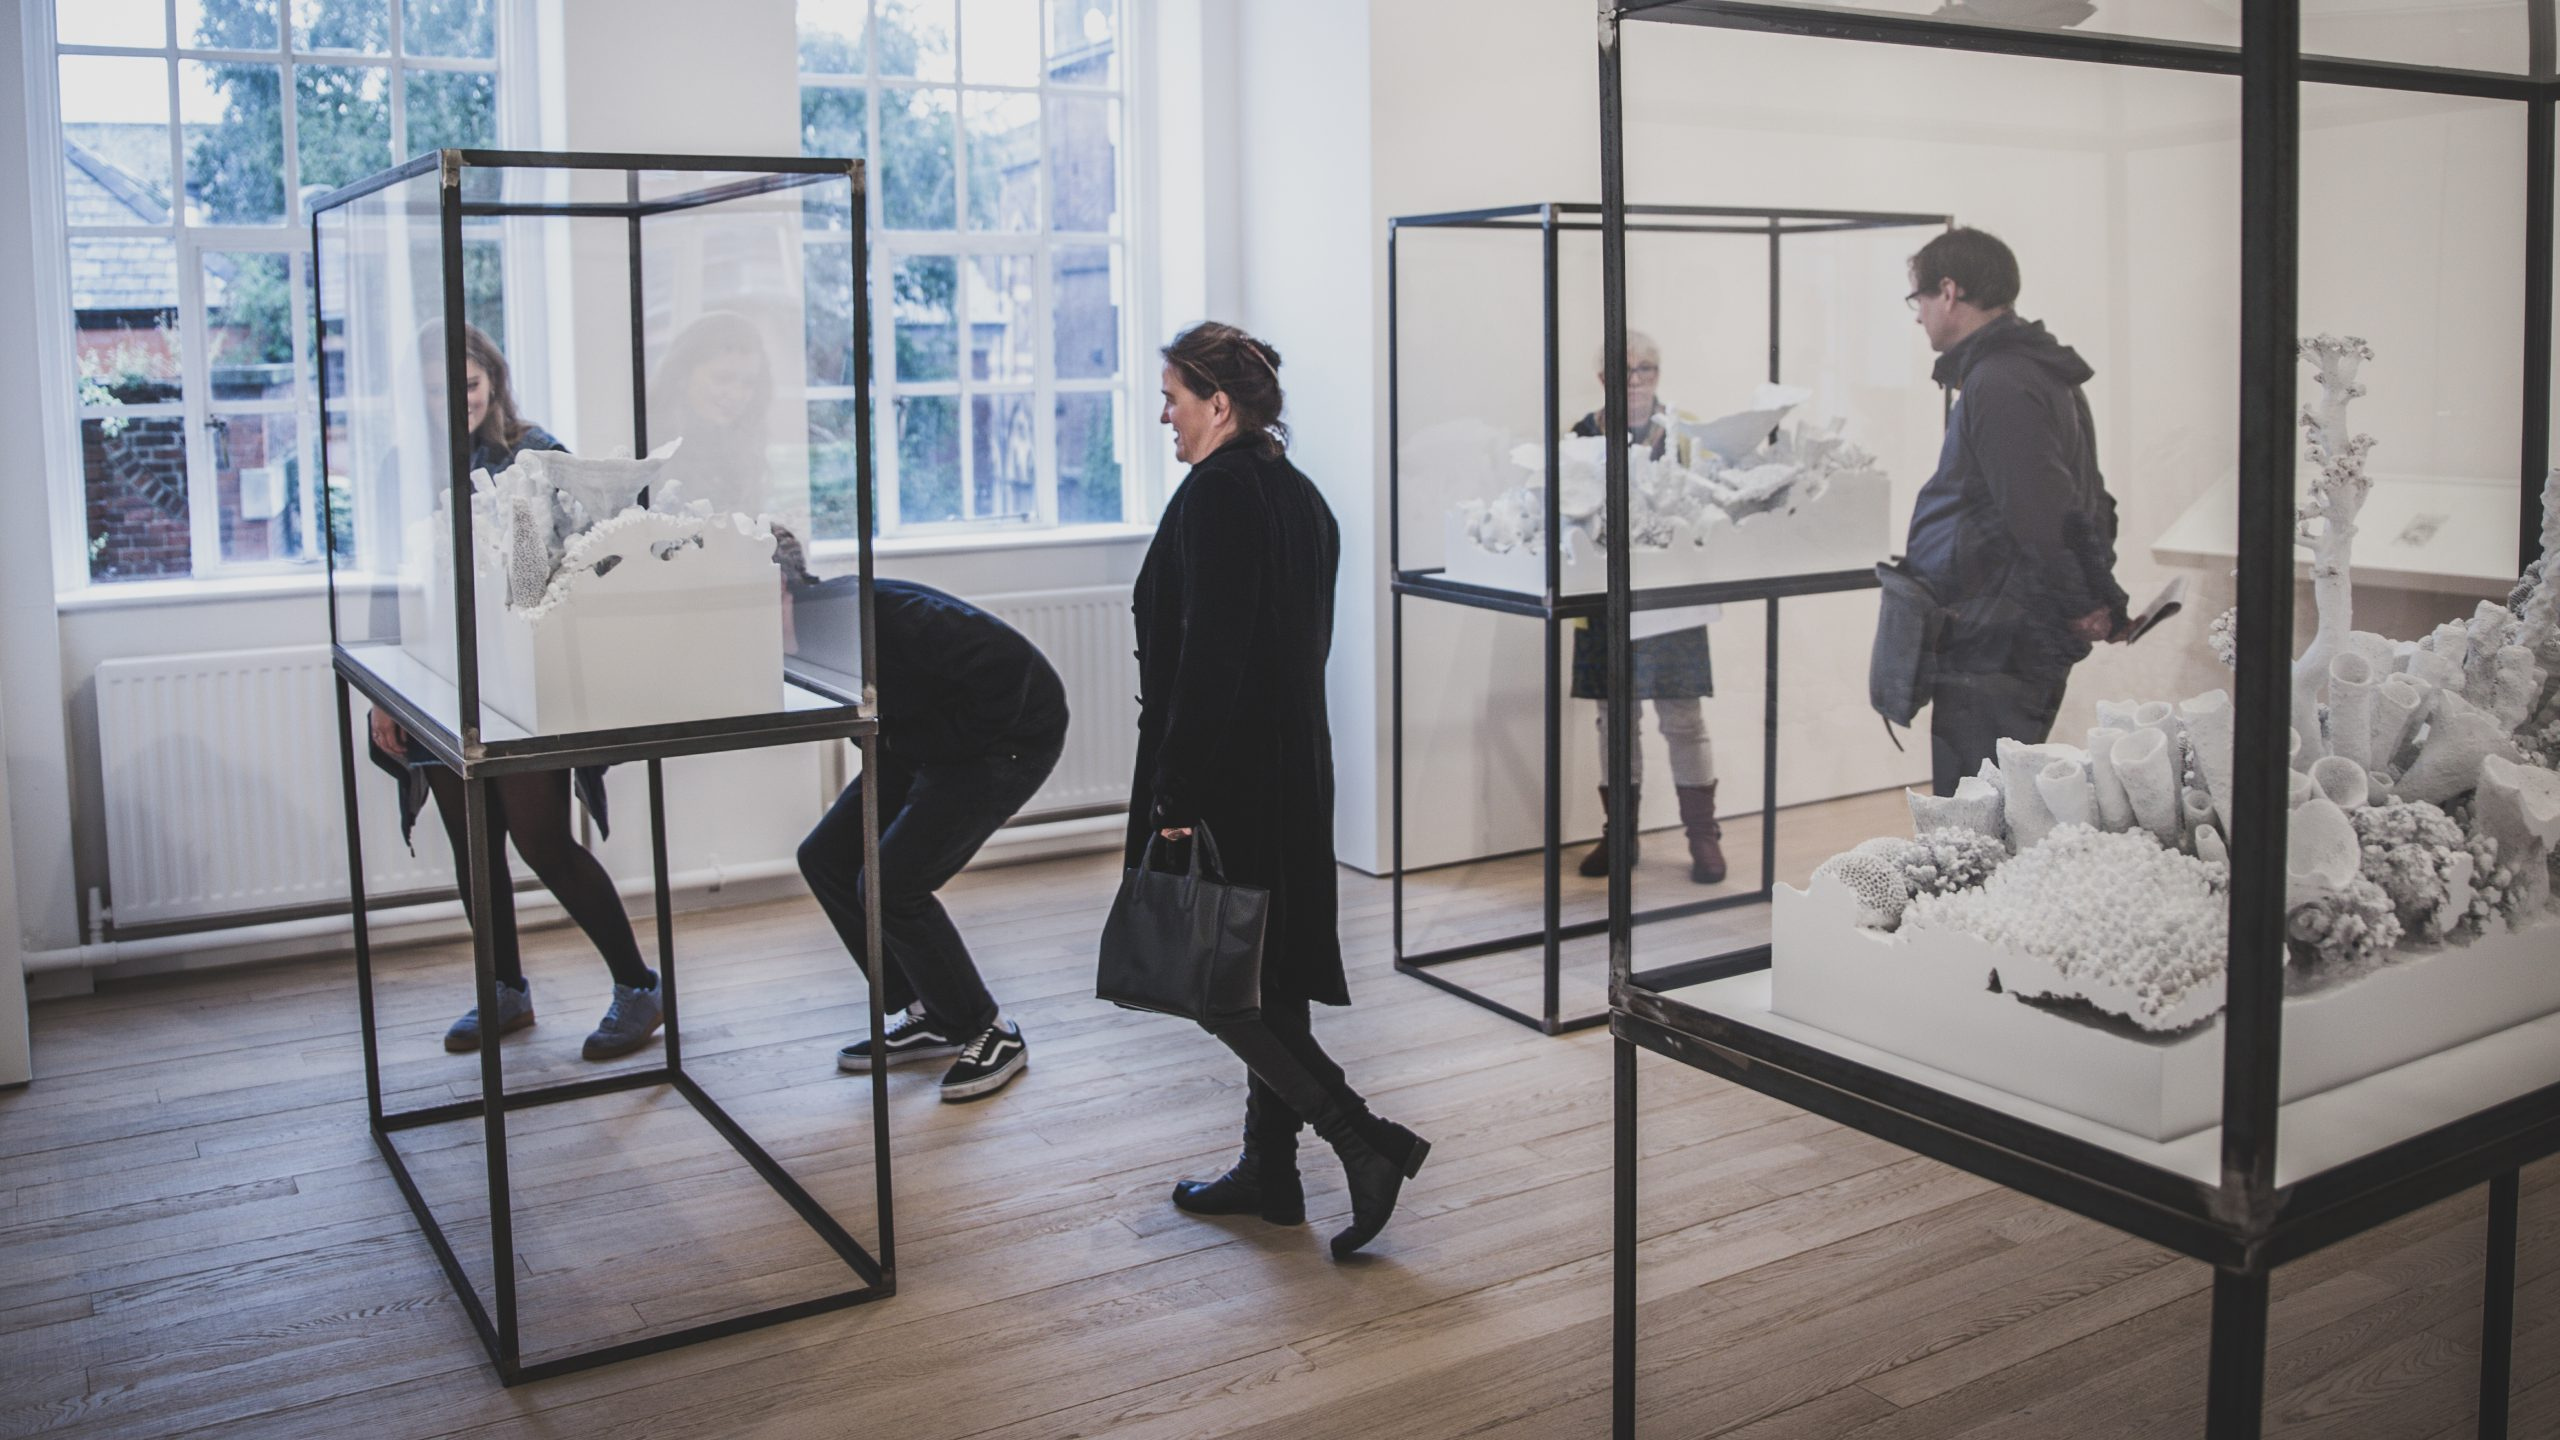 Photograph of people in Exeter Phoenix gallery looking at artwork in glass cases